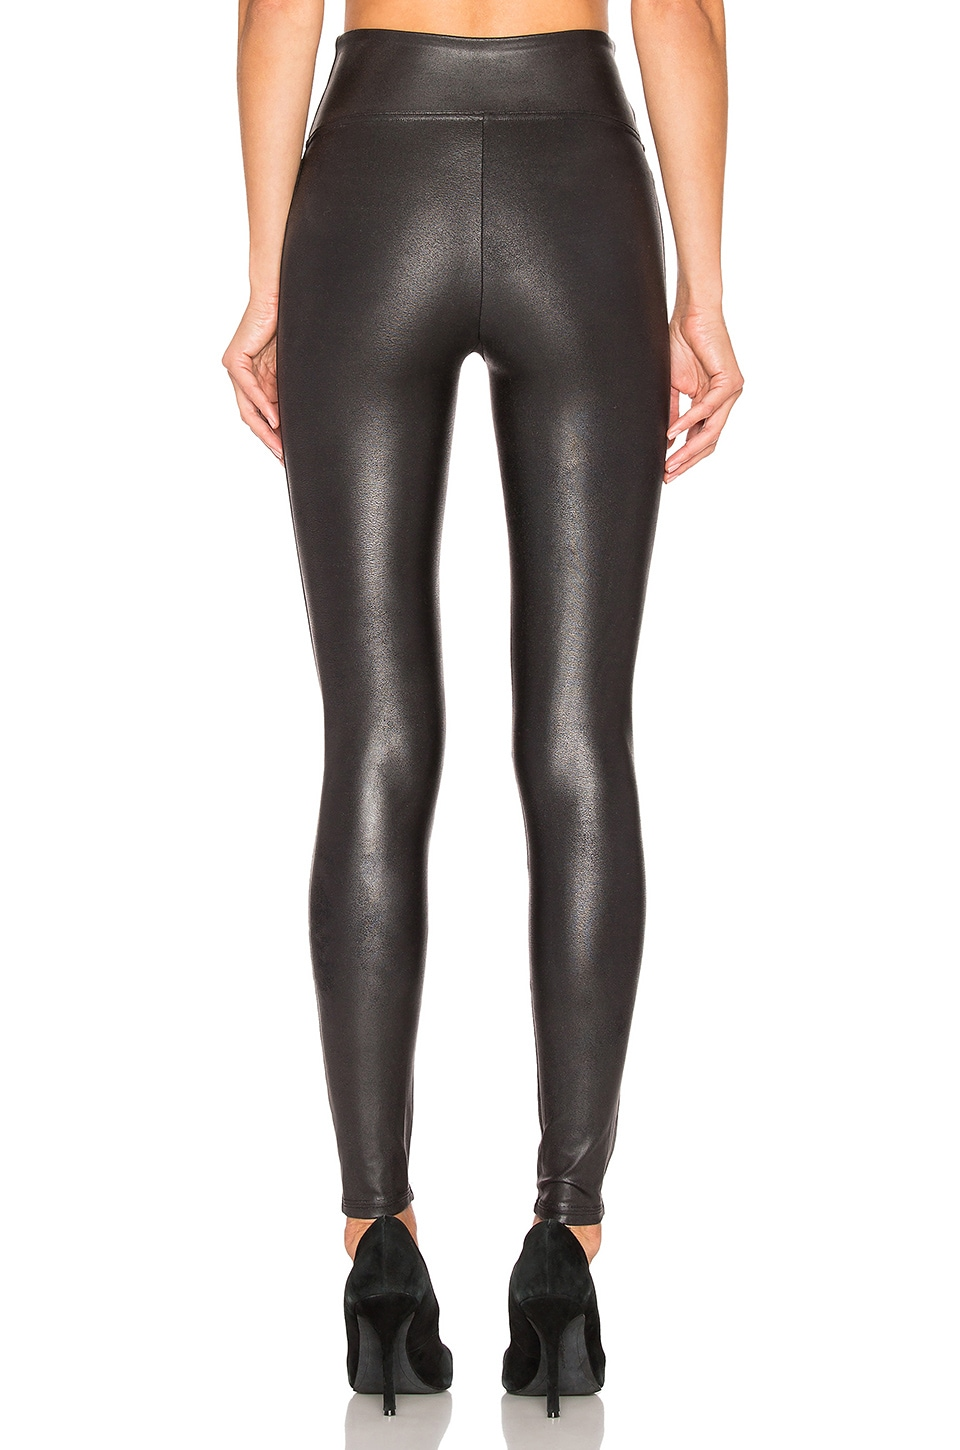 Faux Leather Leggings, view 3, click to view large image.